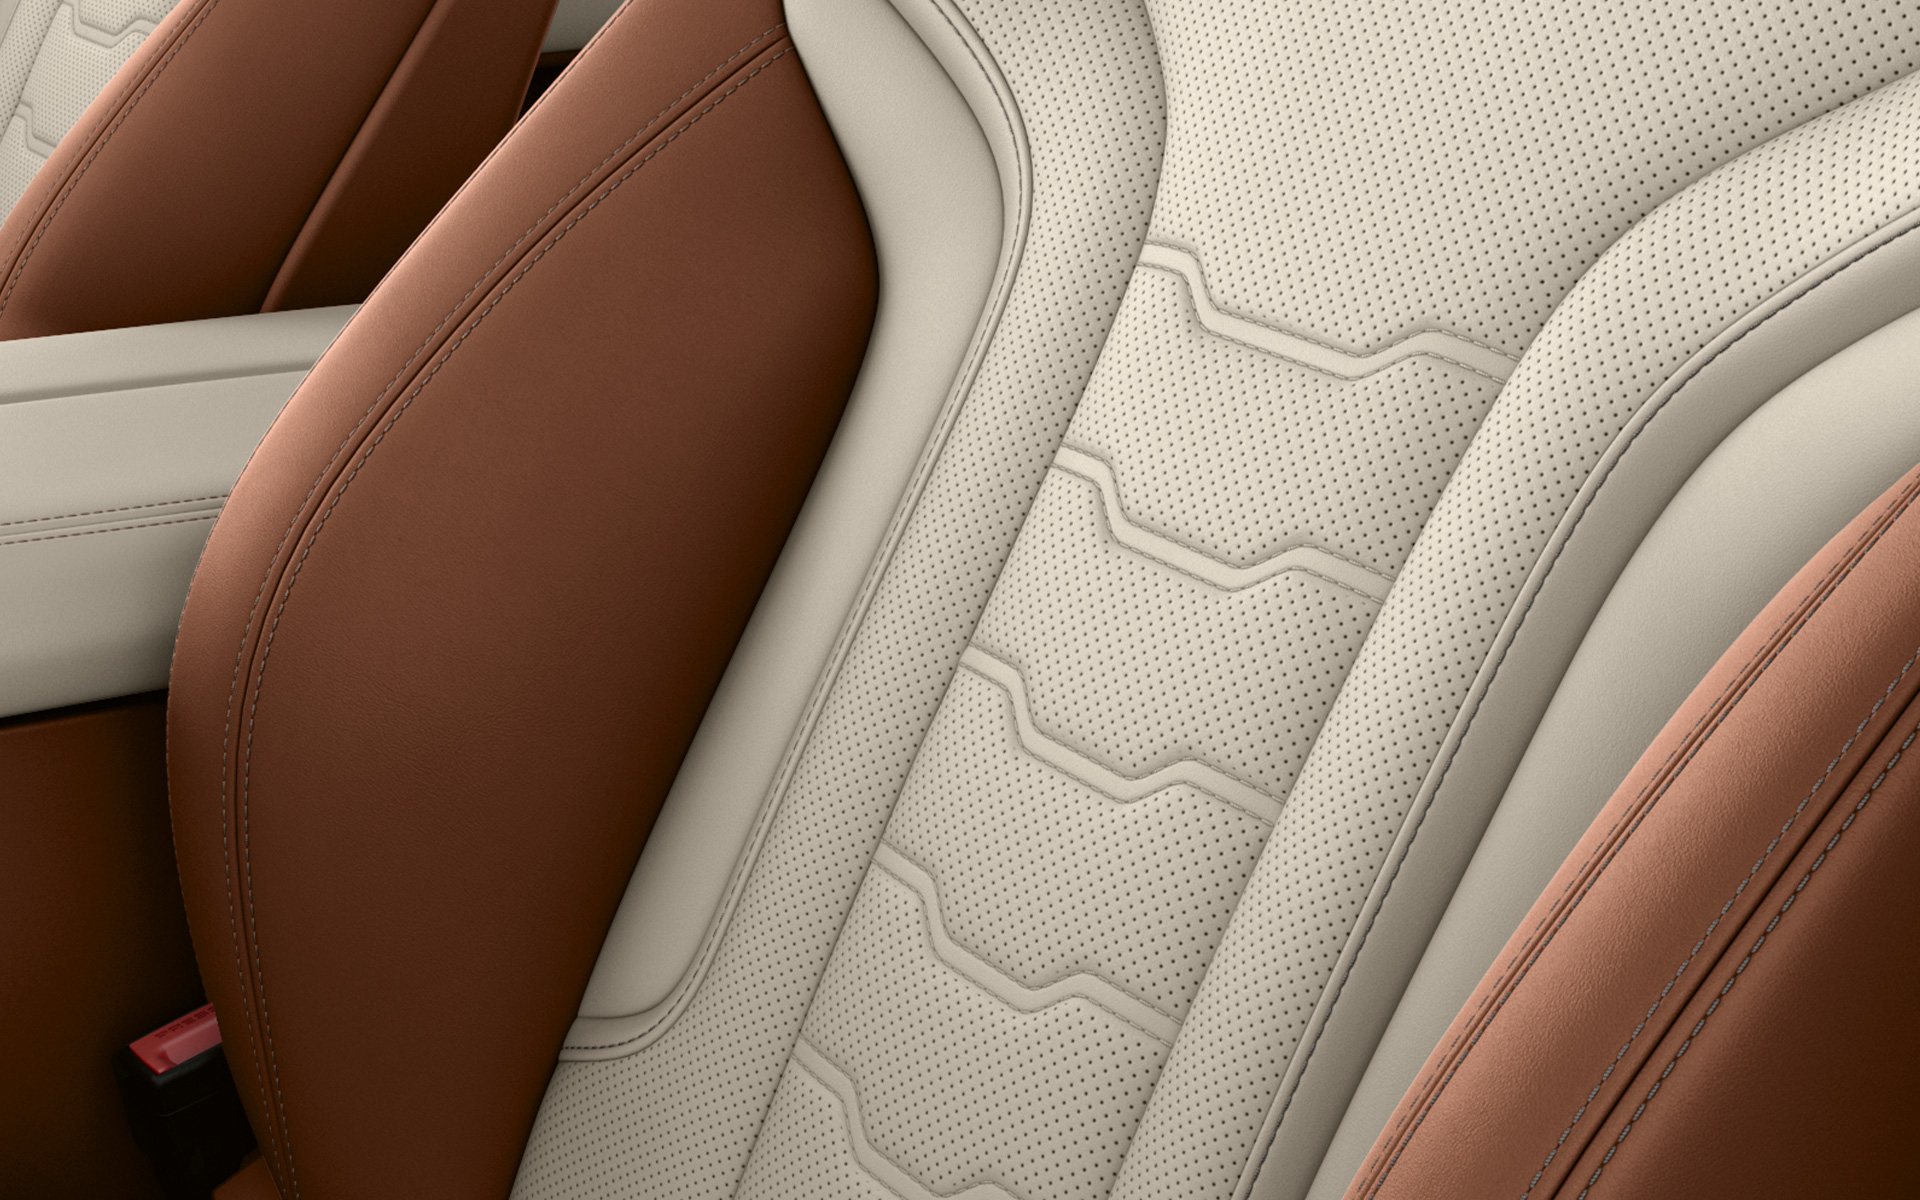 BMW 8 Series Gran Coupé, Individual Sophistication upholstery